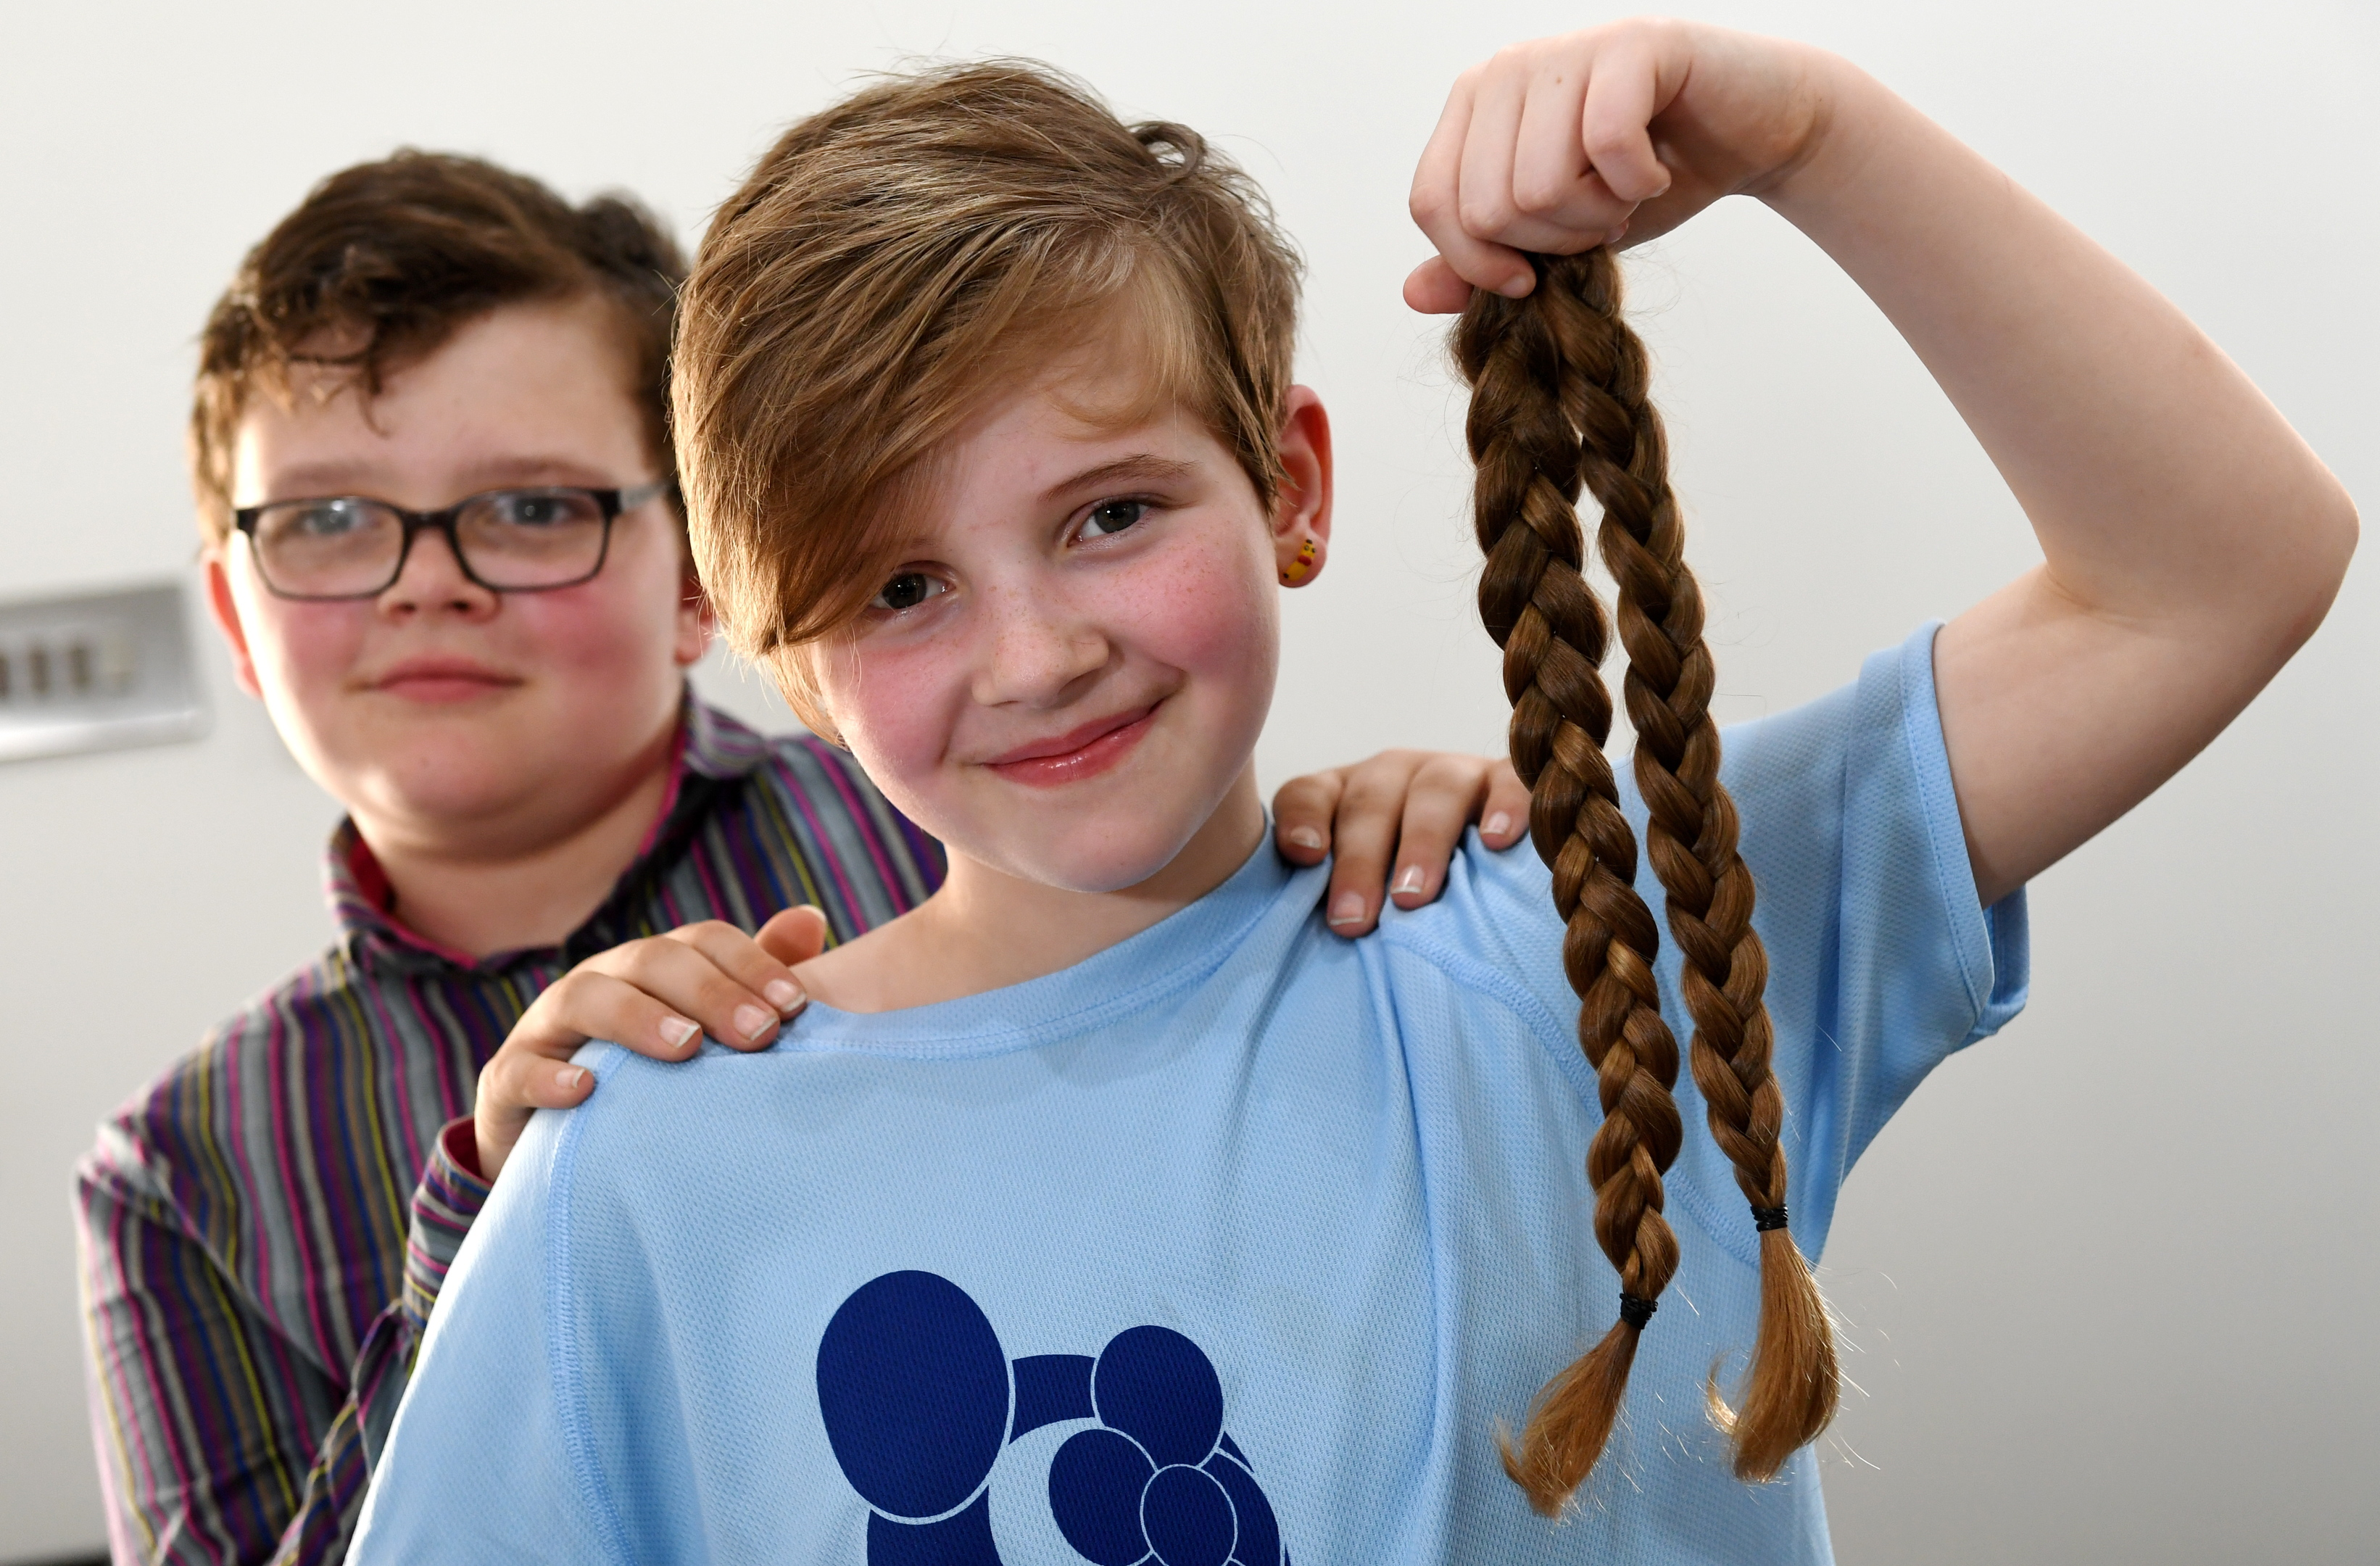 10-year-old Leighann Milne with her brother William after the haircut